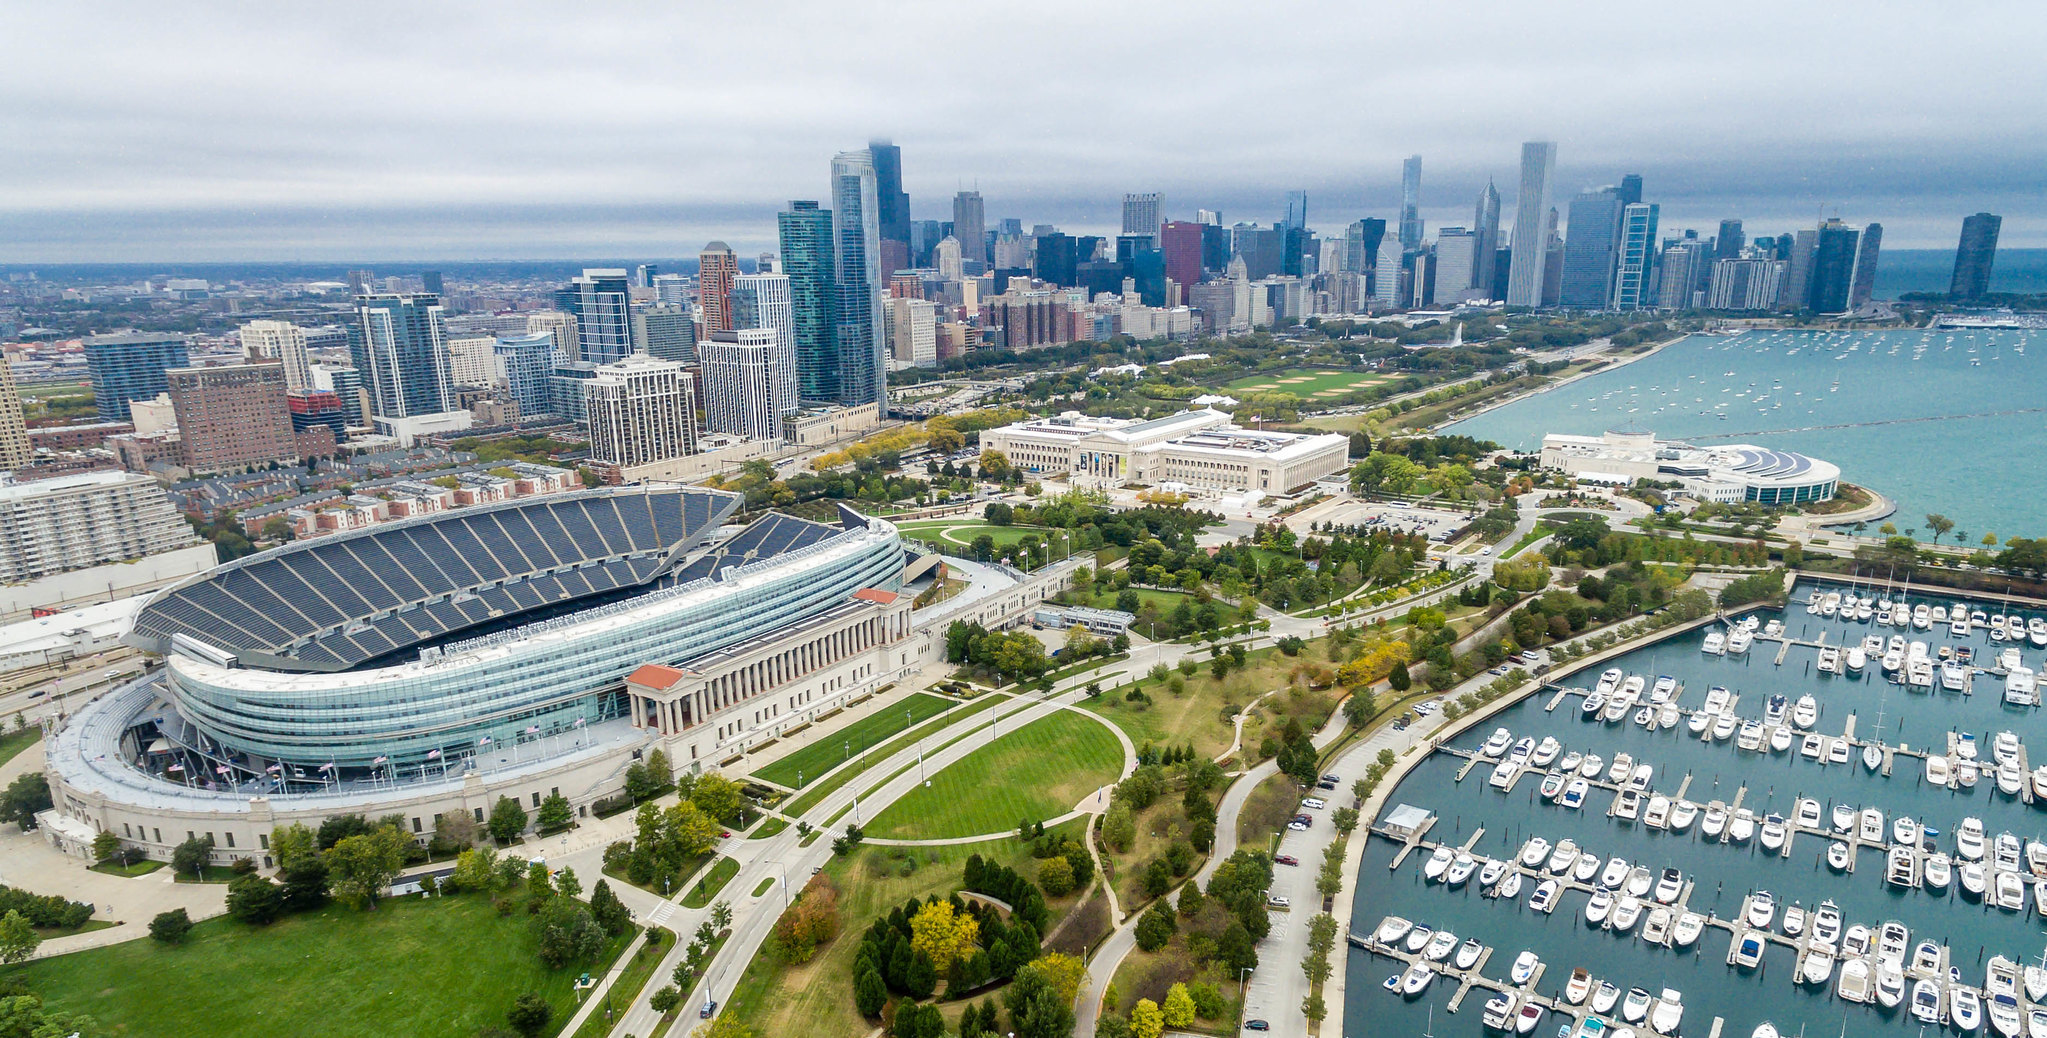 Soccer is coming back to the city when the Chicago Fire moves to Soldier Field in 2020